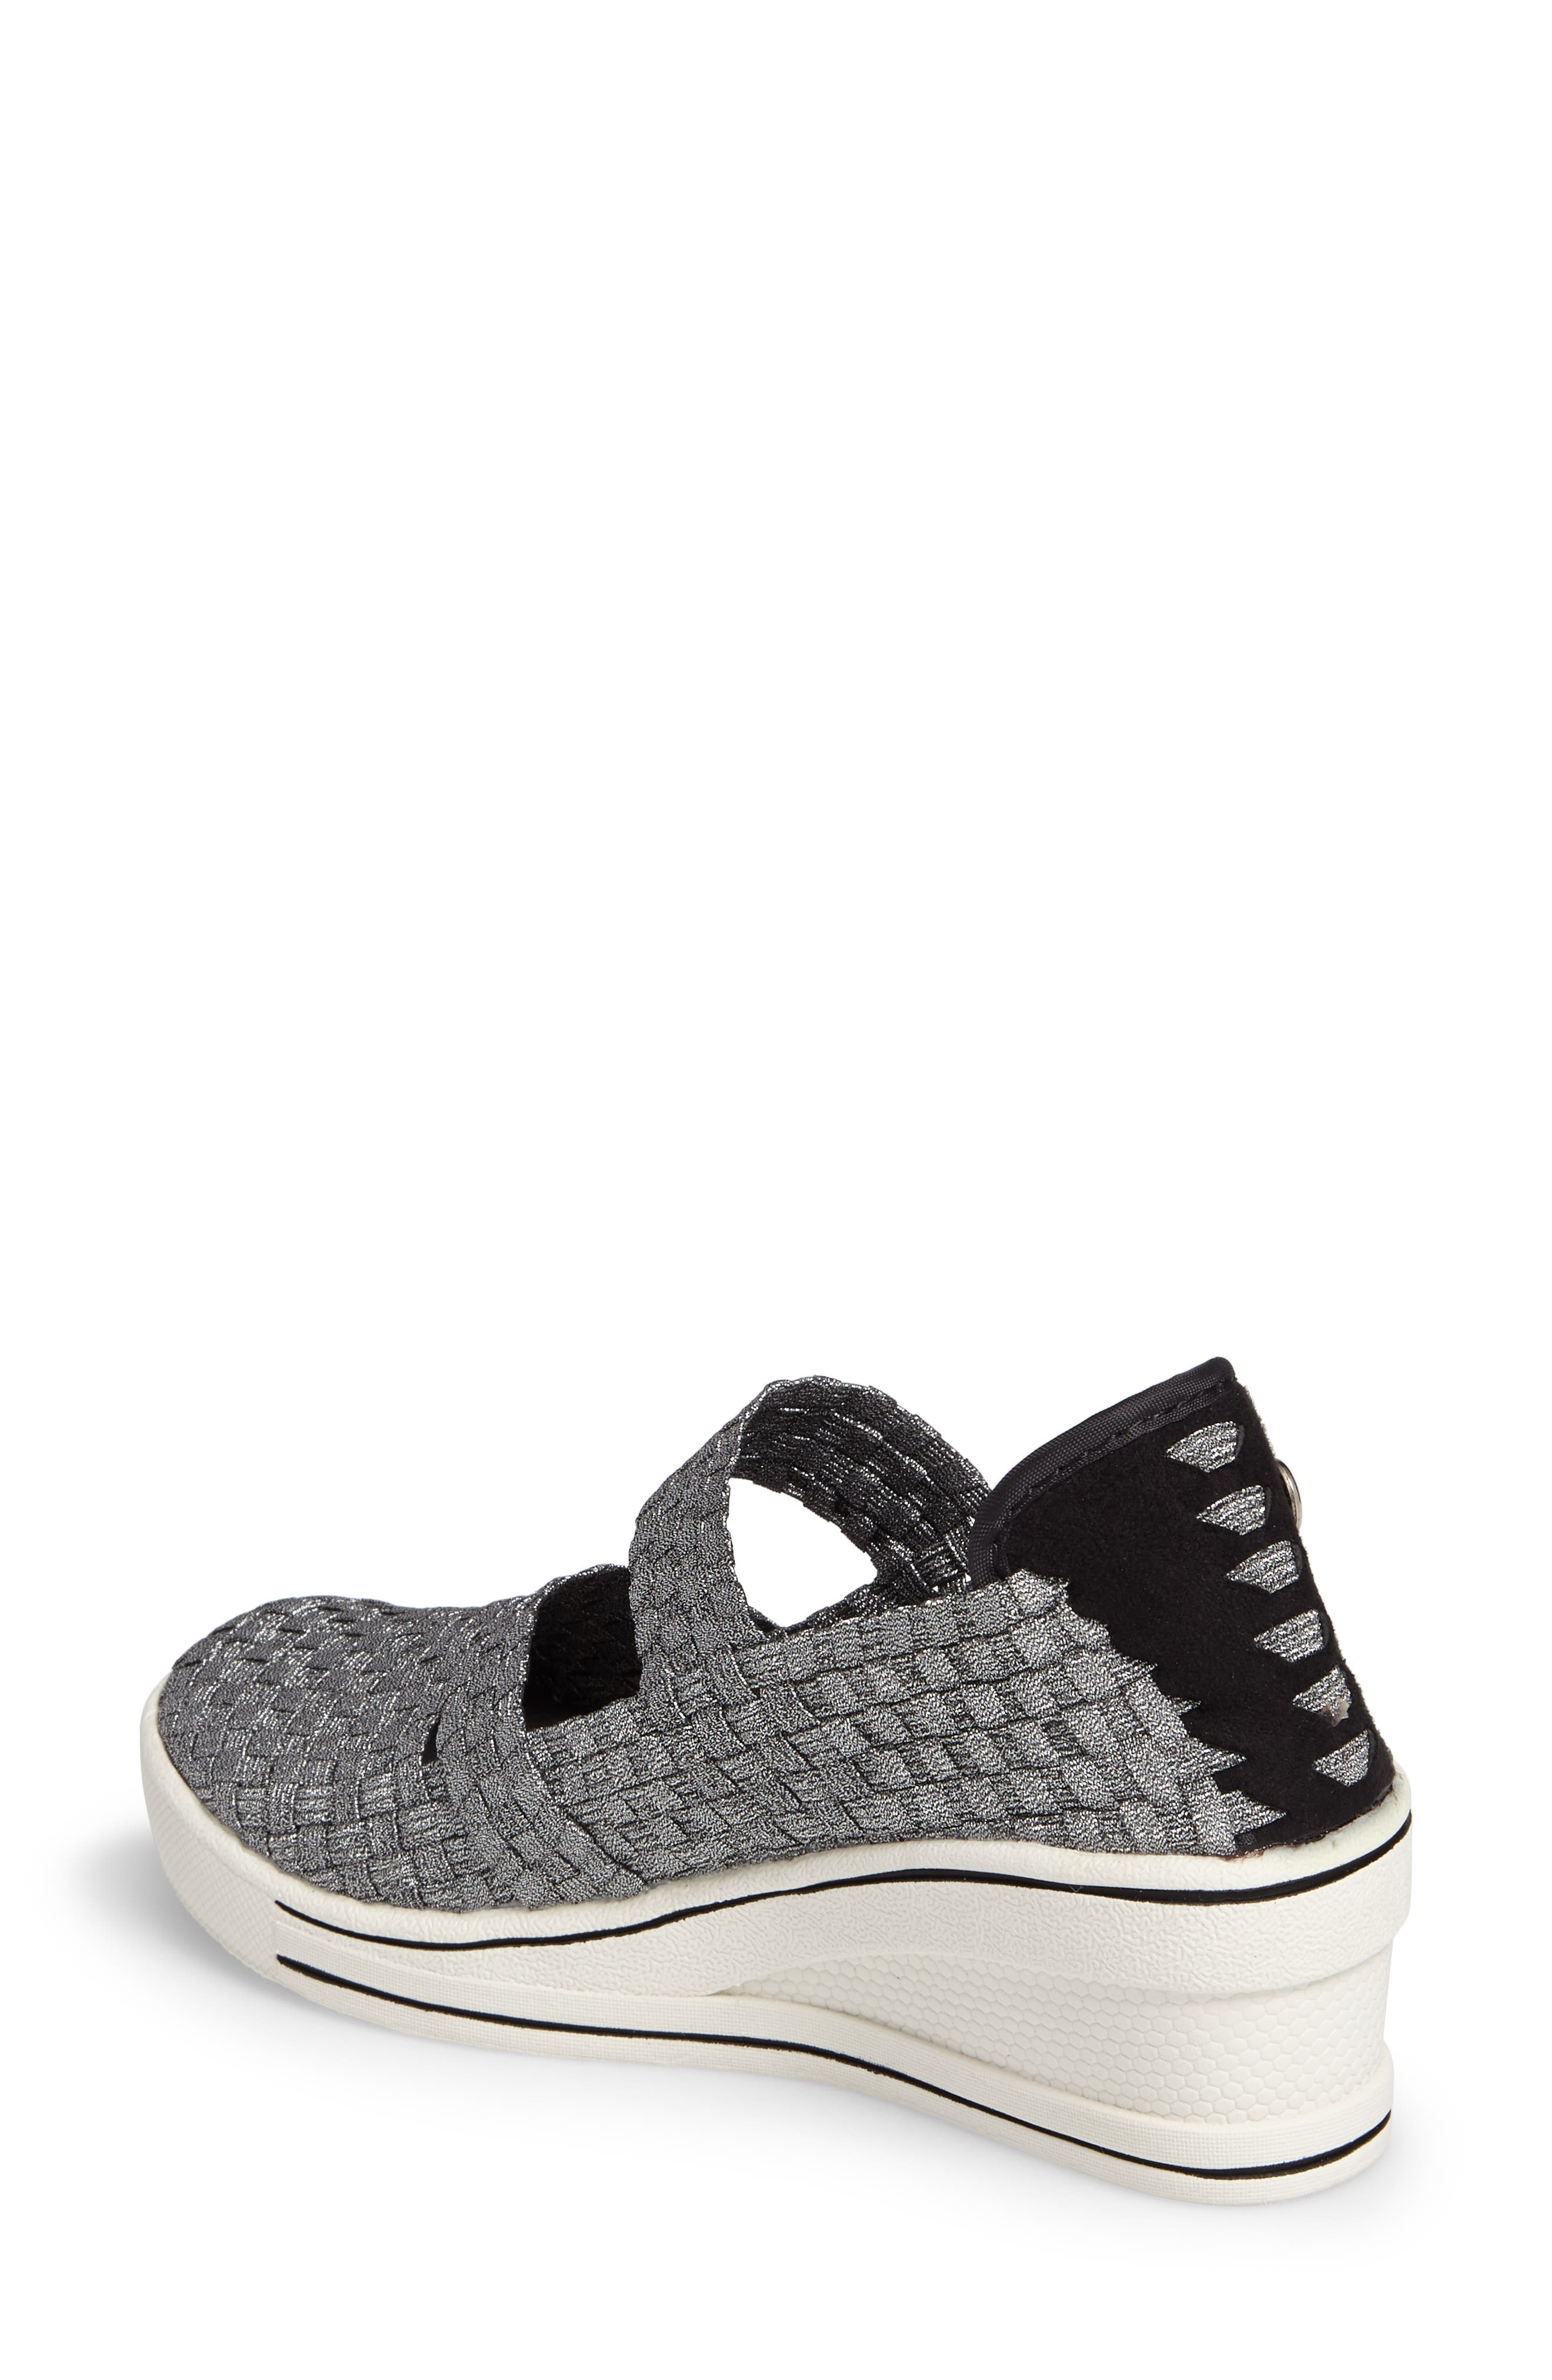 Frontier Woven Mary Jane Wedge,                             Alternate thumbnail 2, color,                             PEWTER FABRIC